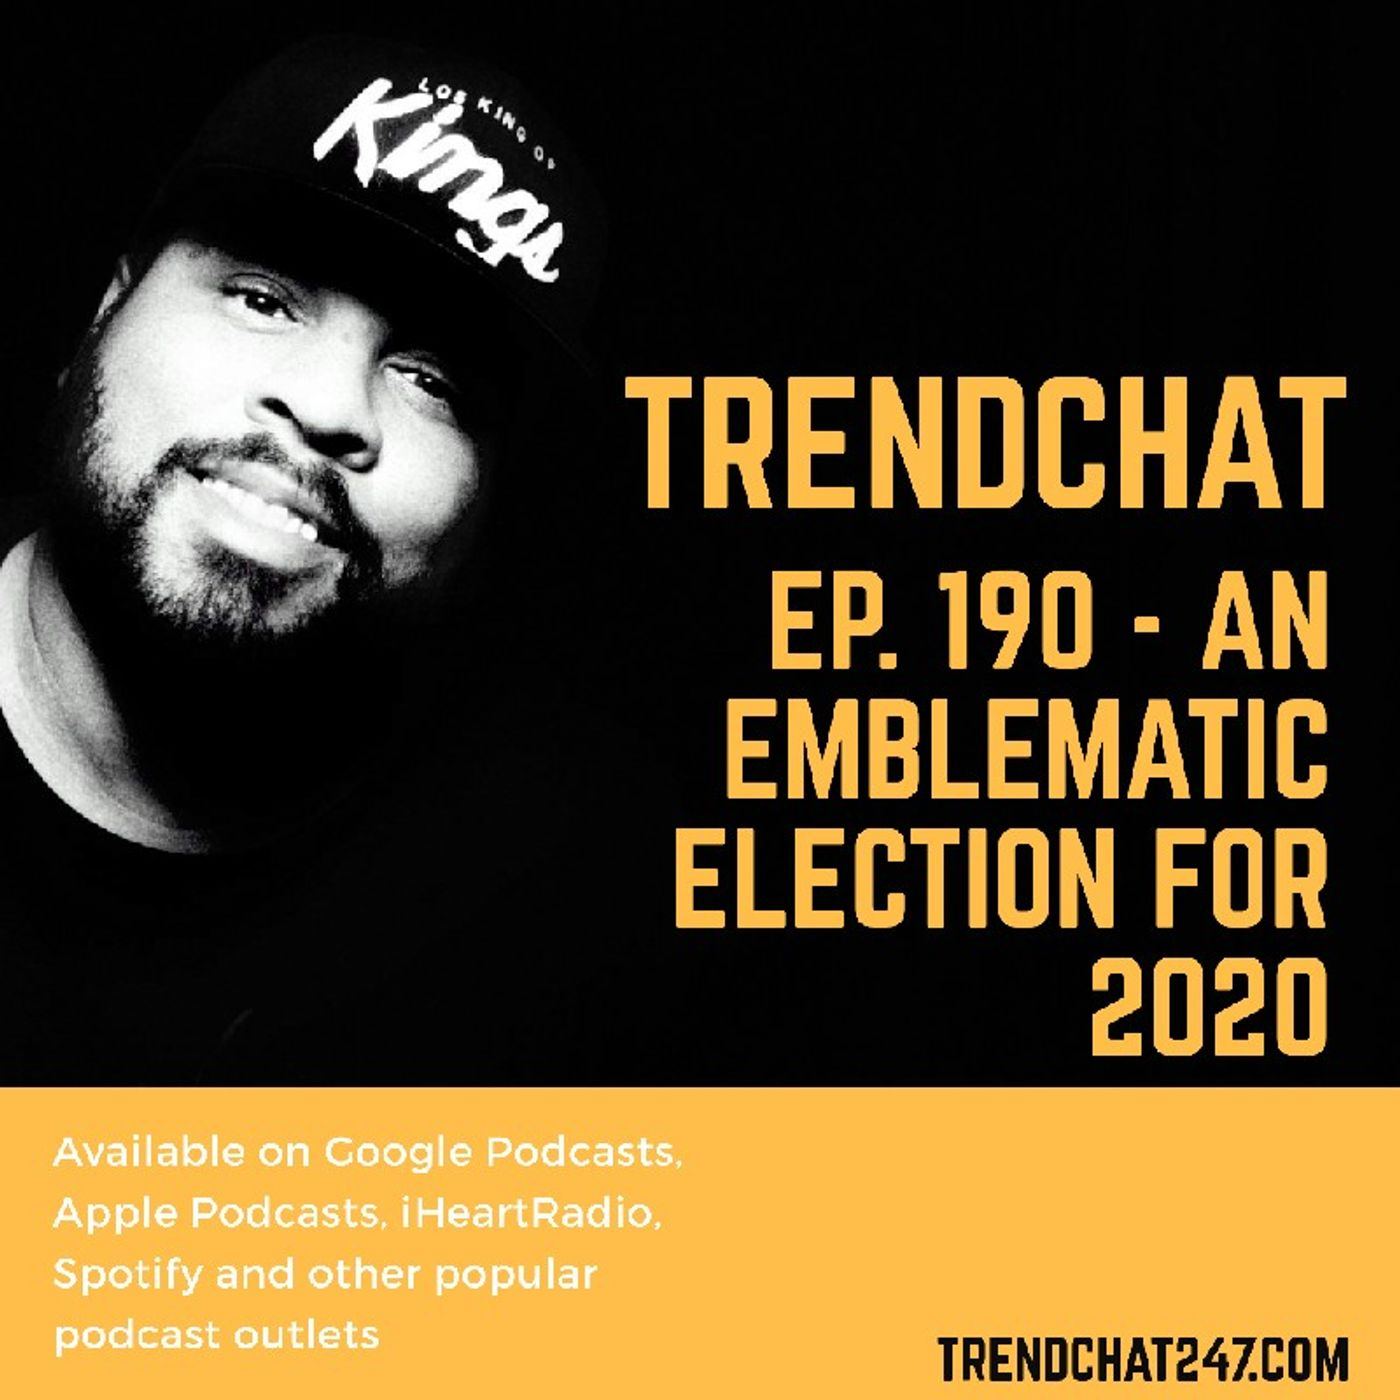 Ep. 190 - An Emblematic Election For 2020